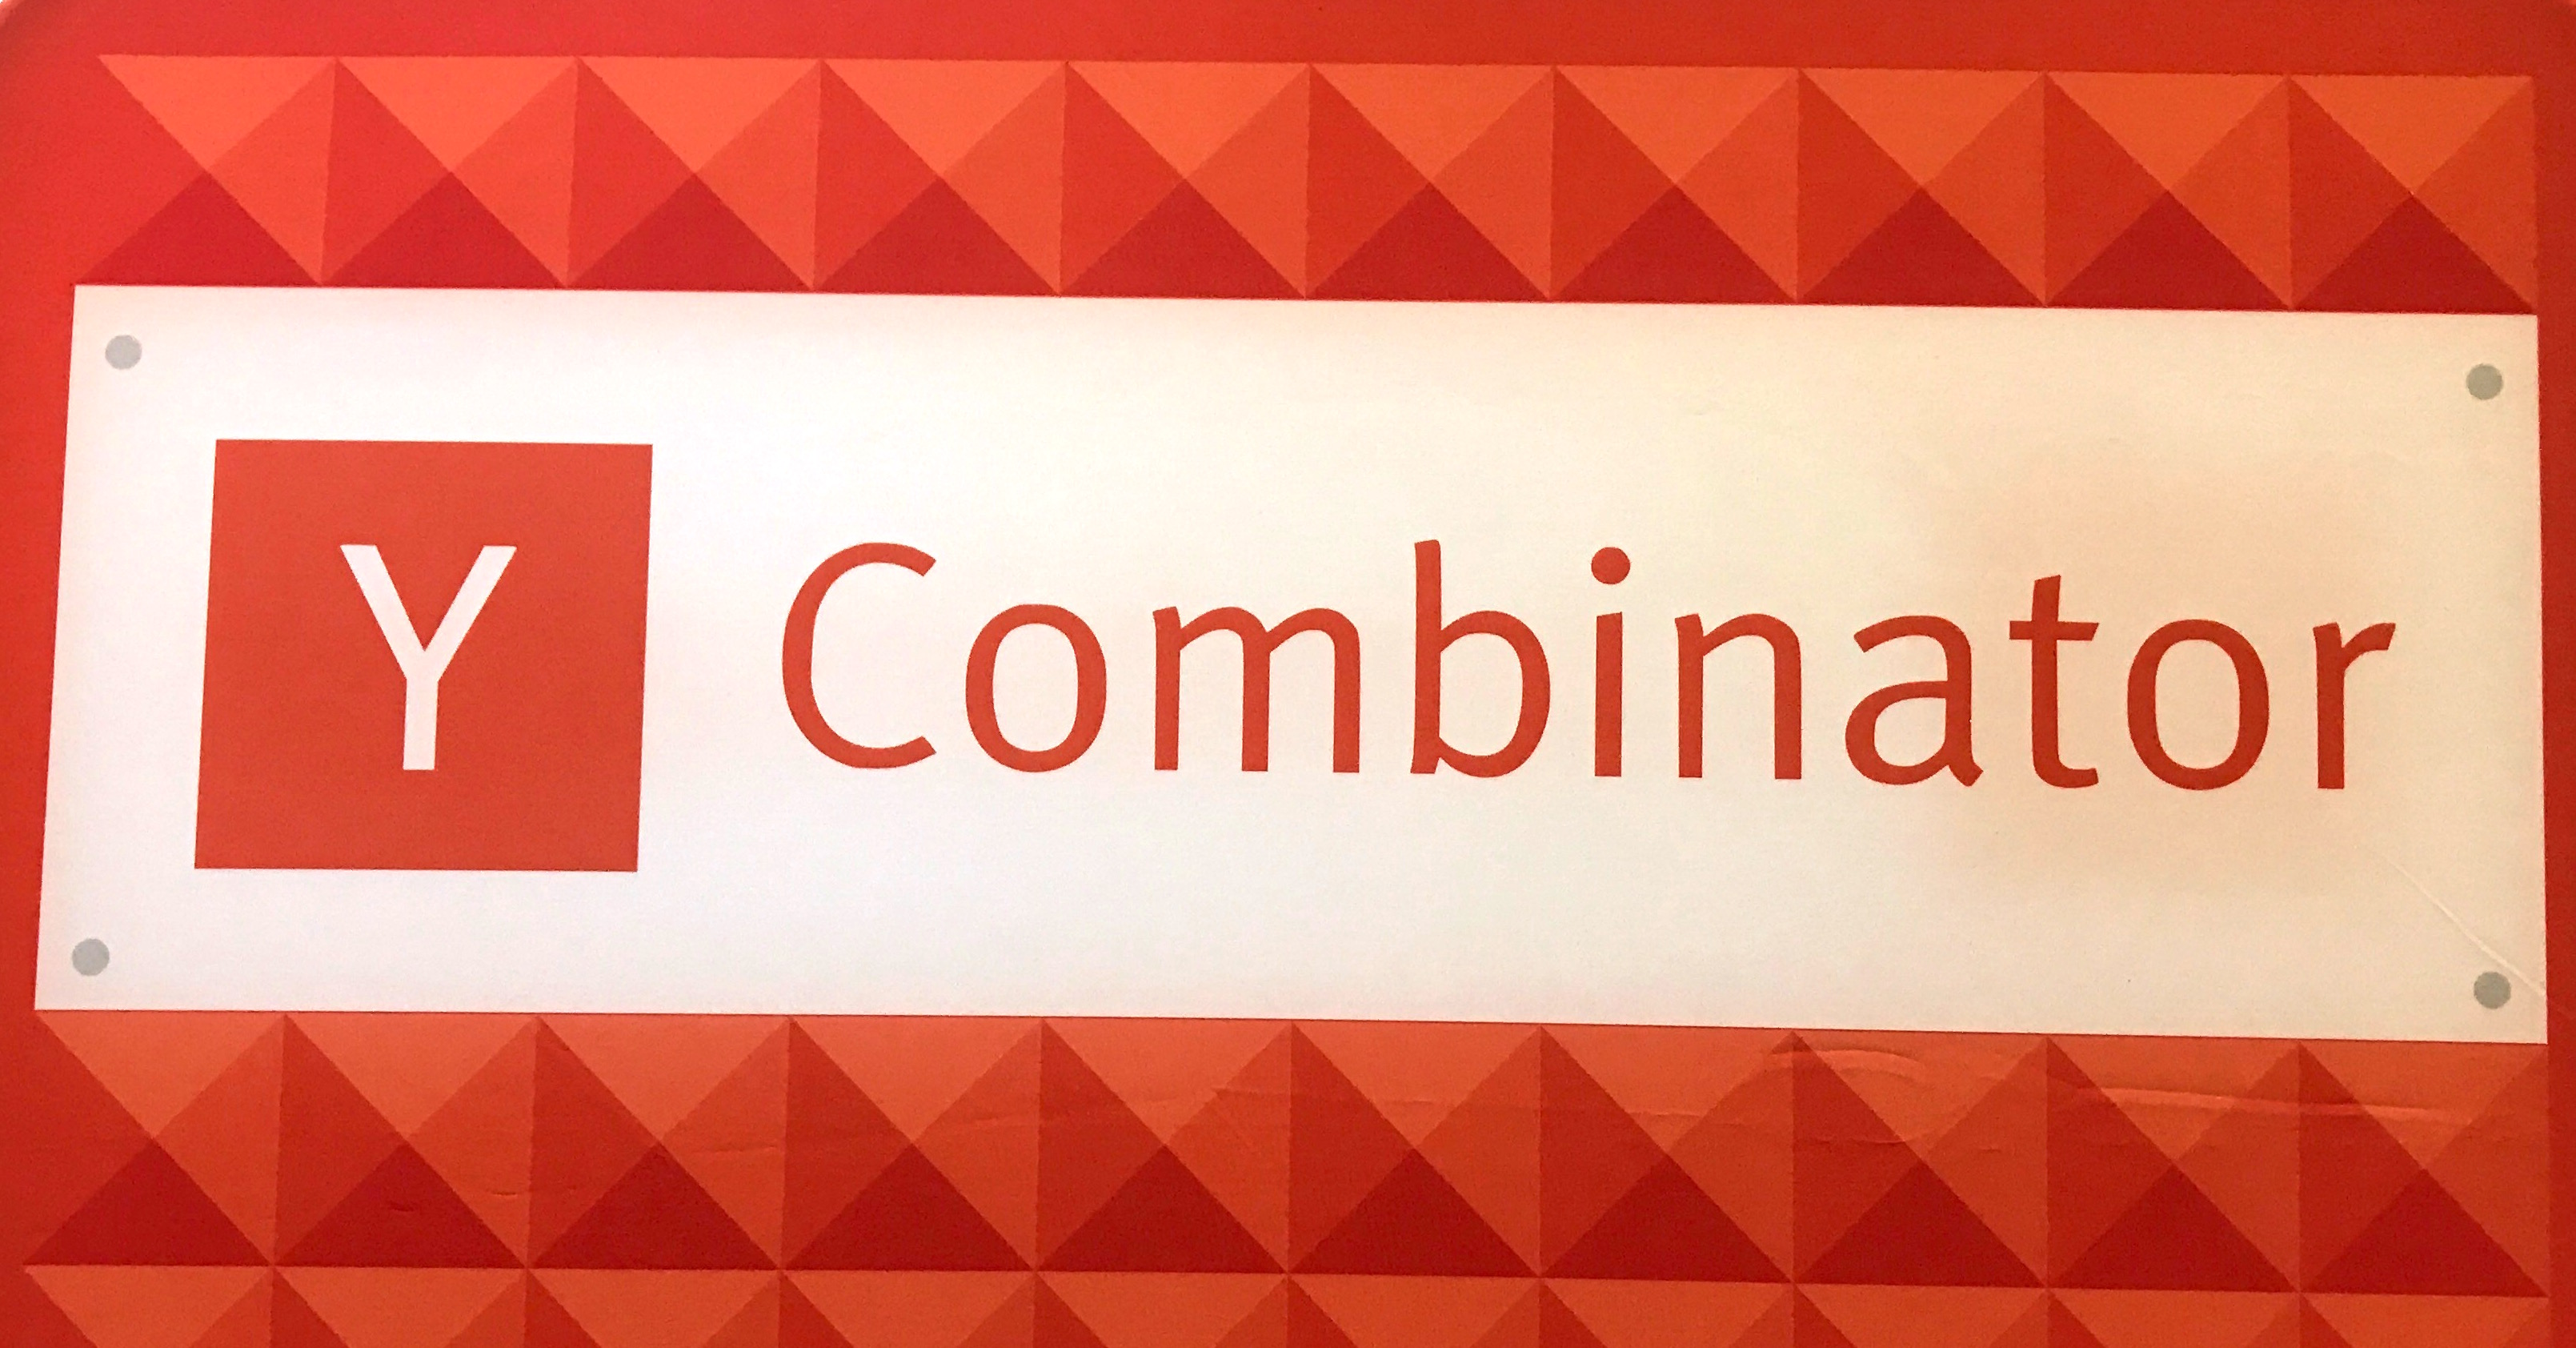 Y Combinator ends plans for China accelerator